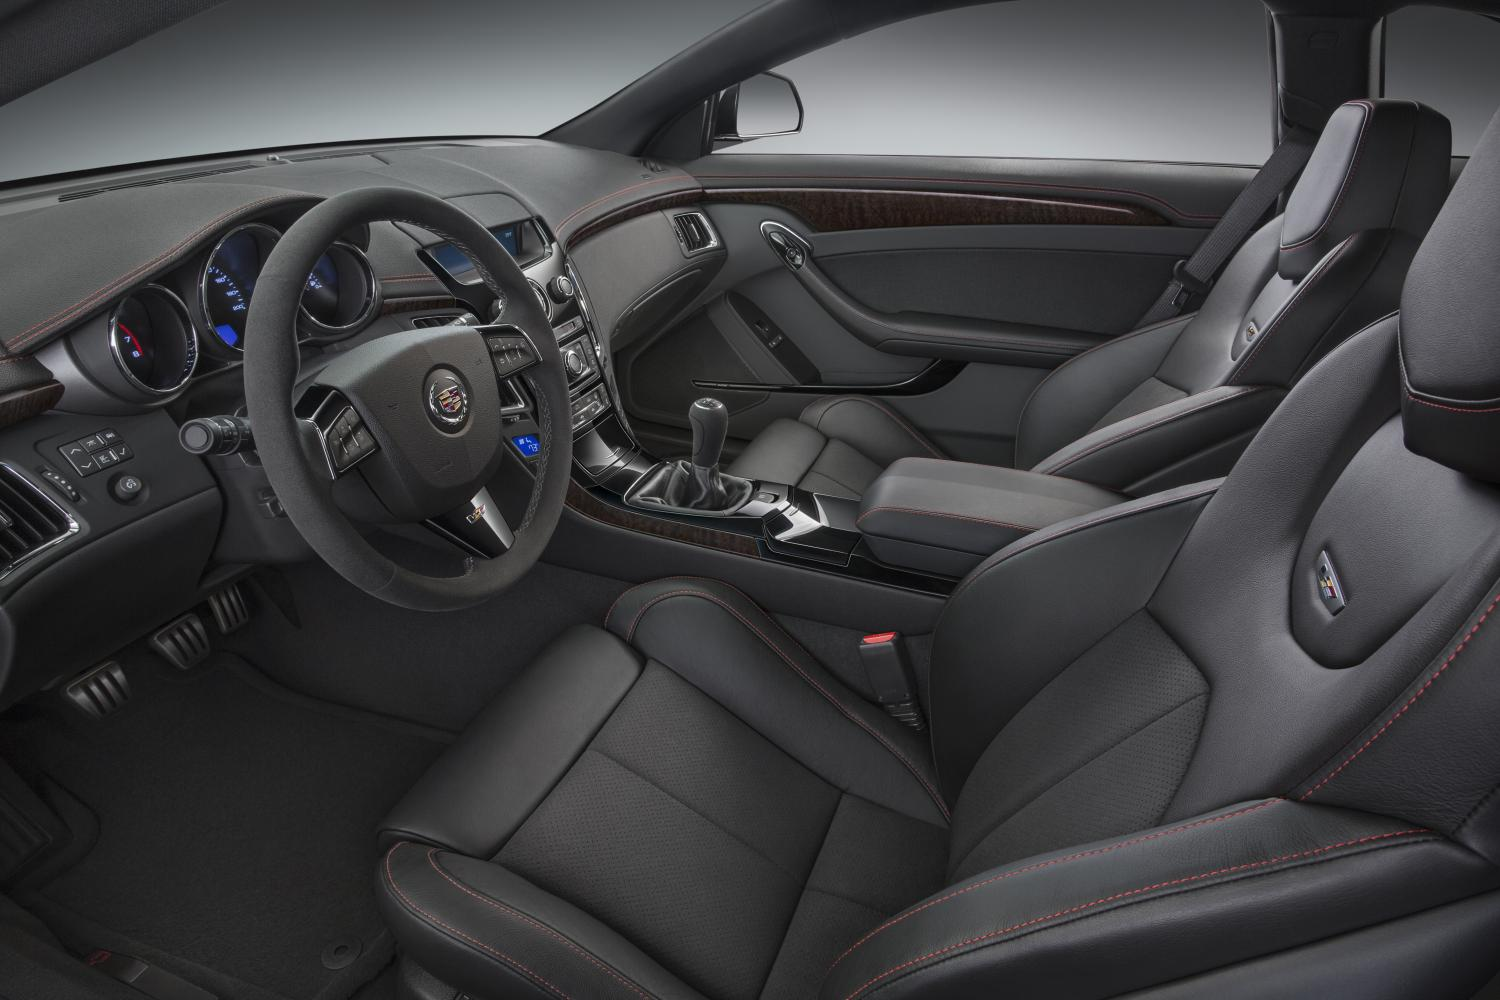 2015 Cadillac CTS-V Coupe interior